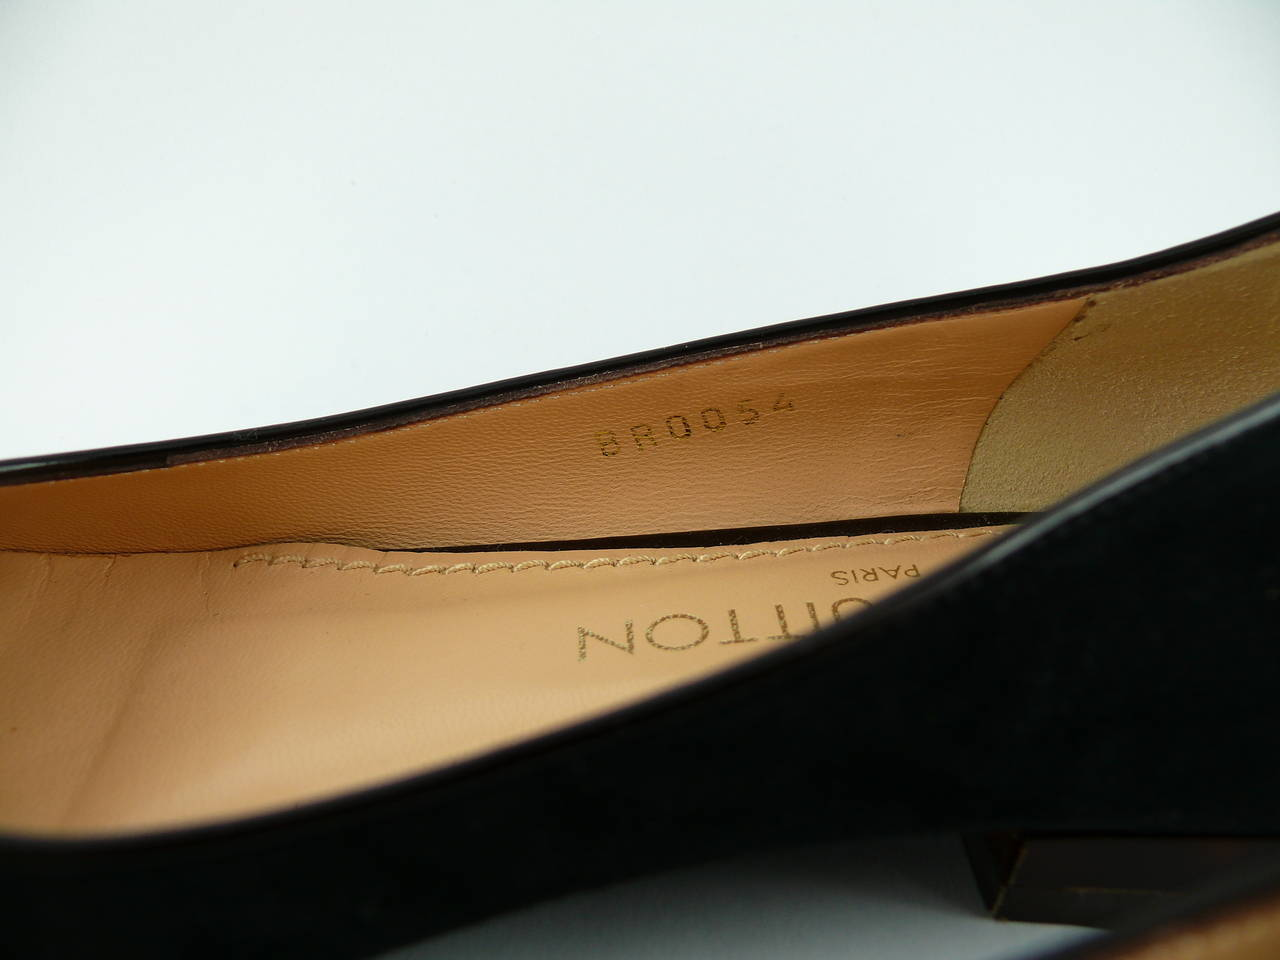 Louis Vuitton Black Suede and Resin Flower Ballet Flat IT 34 1/2 - US 5 1/2 For Sale 3